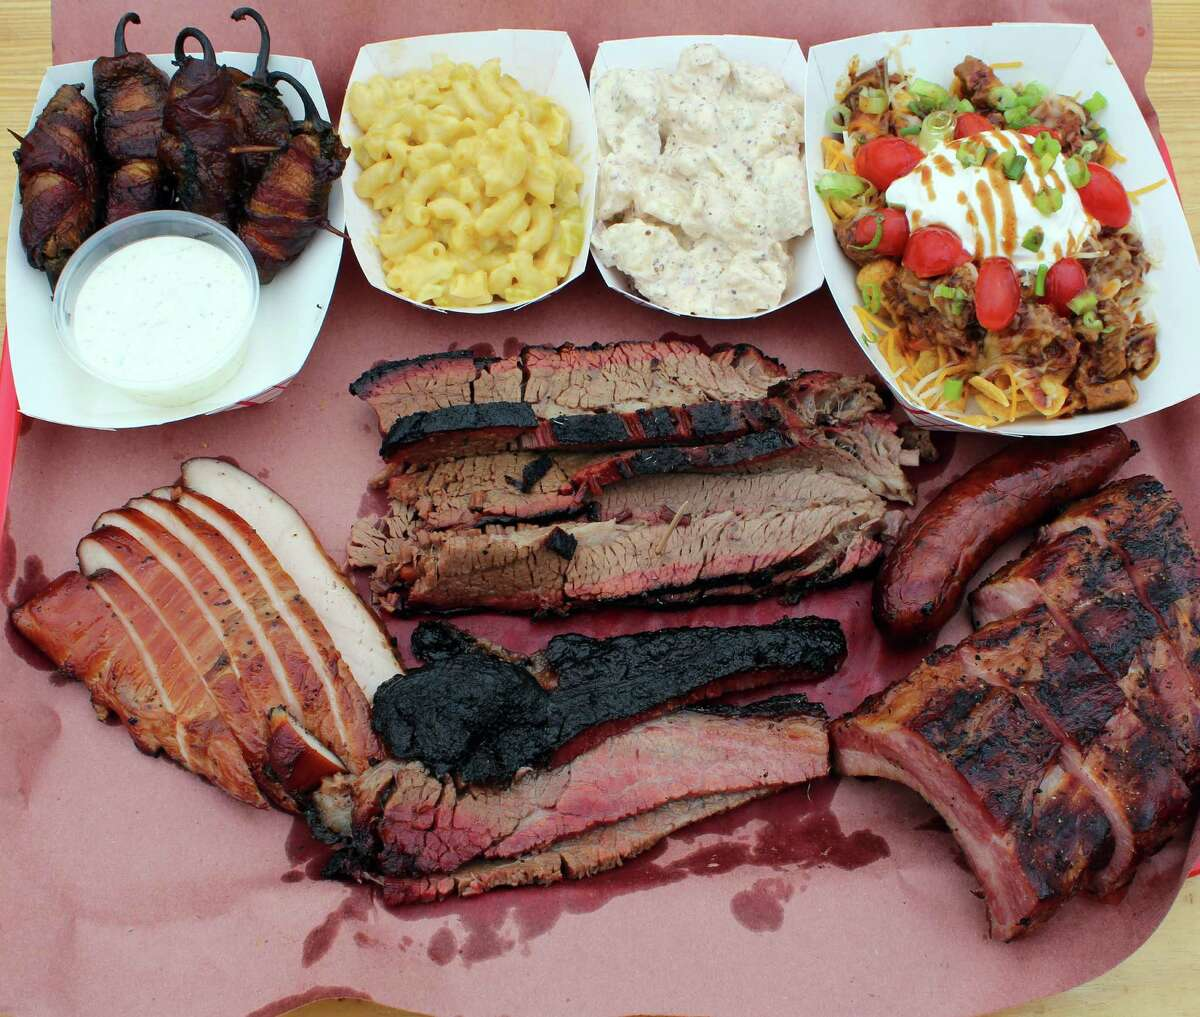 Meats and sides at the folksy B&D Ice House.